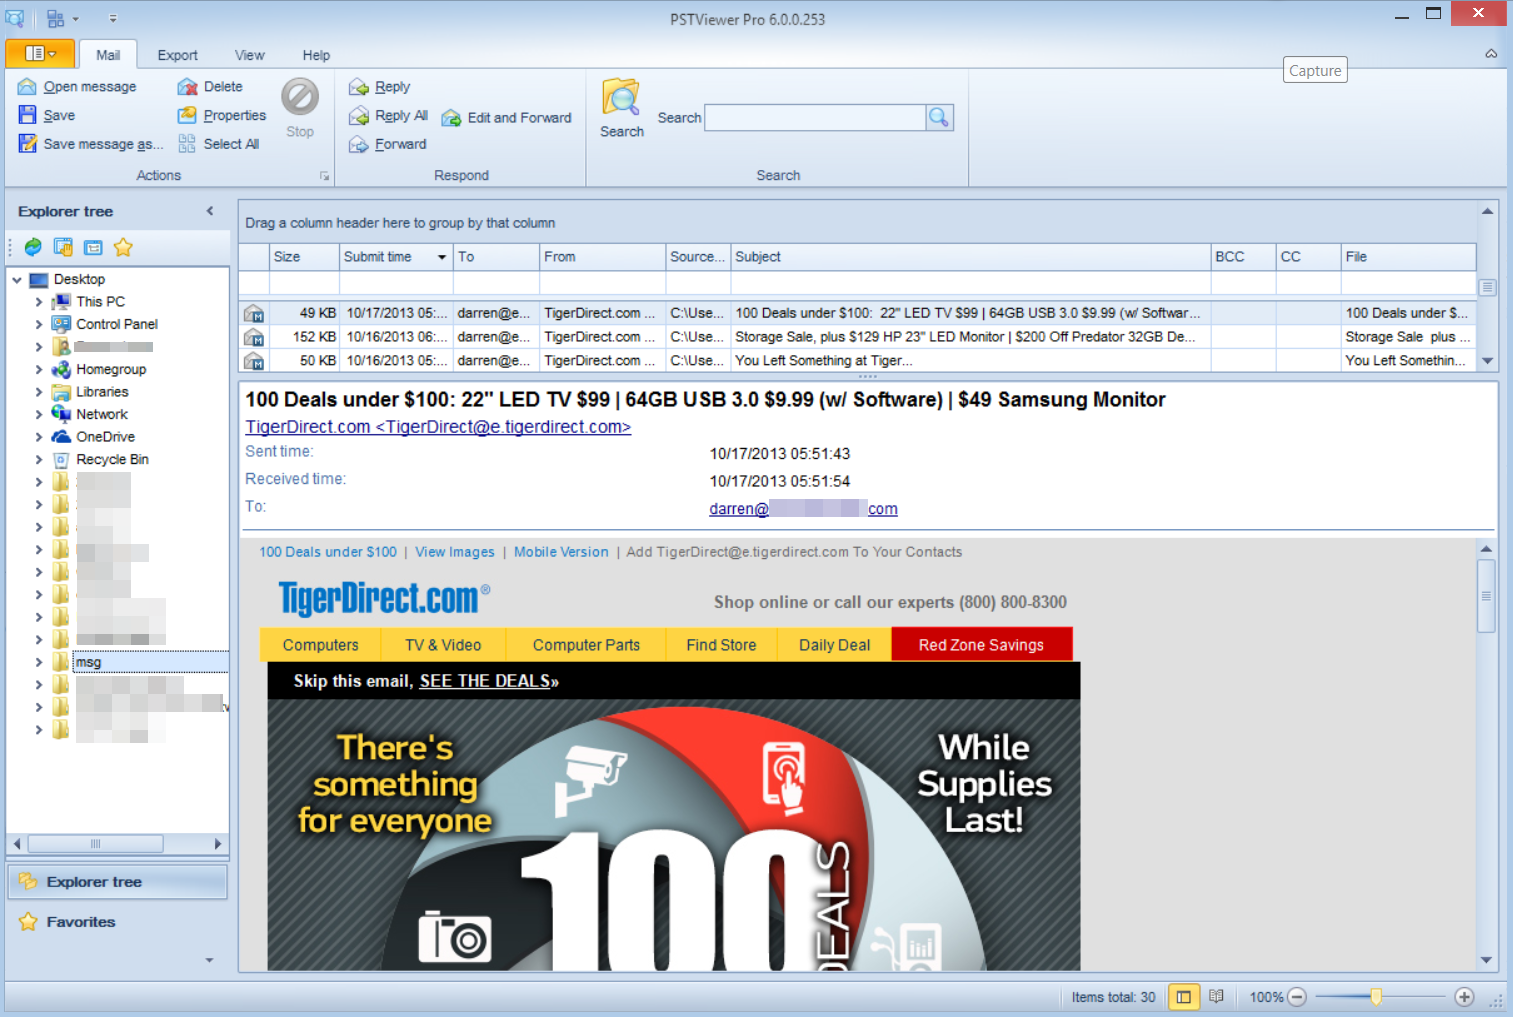 Updated PST Viewer Pro screen shot, showing new user interface for managing Outlook email content.